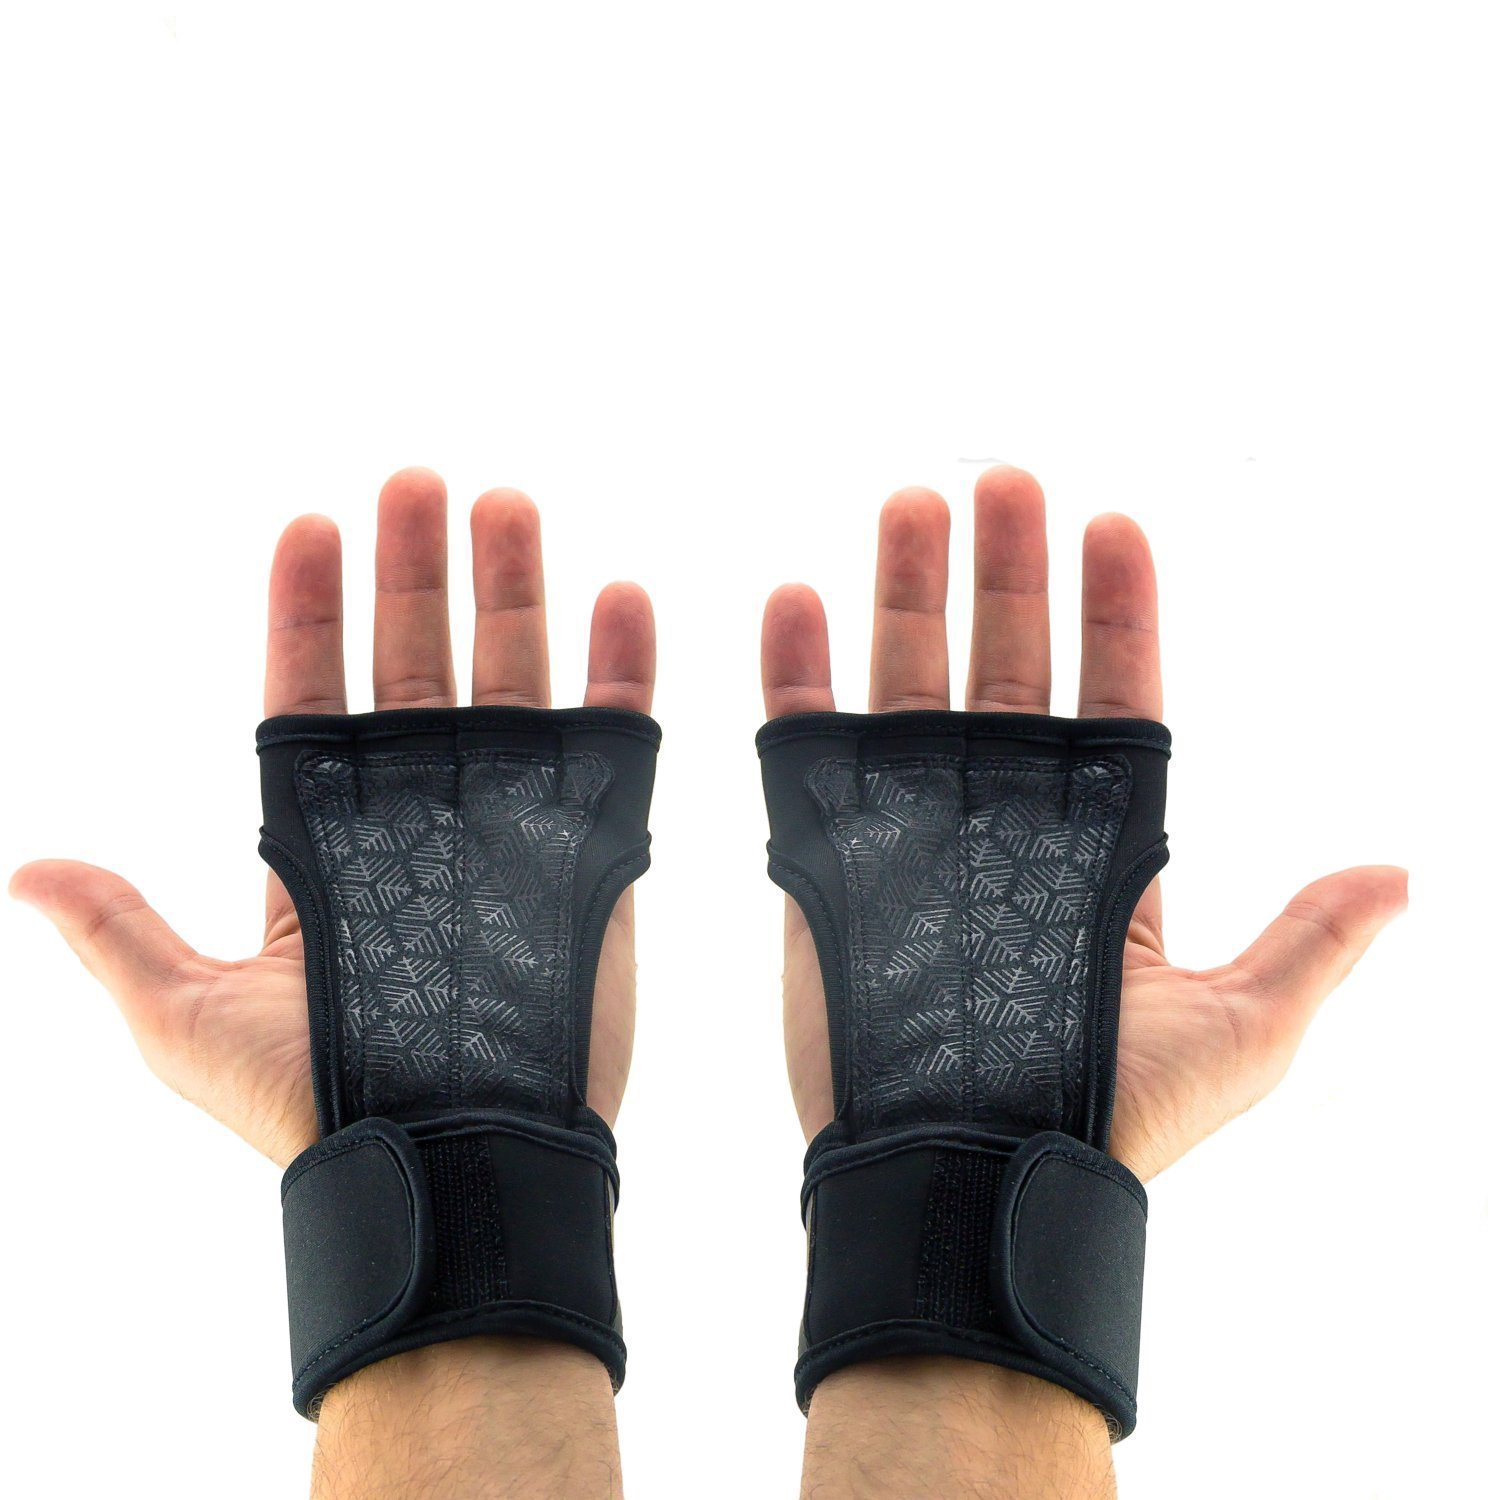 Workout Gloves with Wrist Support for Cross Training, WODs, Powerlifting, Weightlifting & Crossfit - Suitable for Men & Women - Protection from Painful Calluses, Rips & Tears